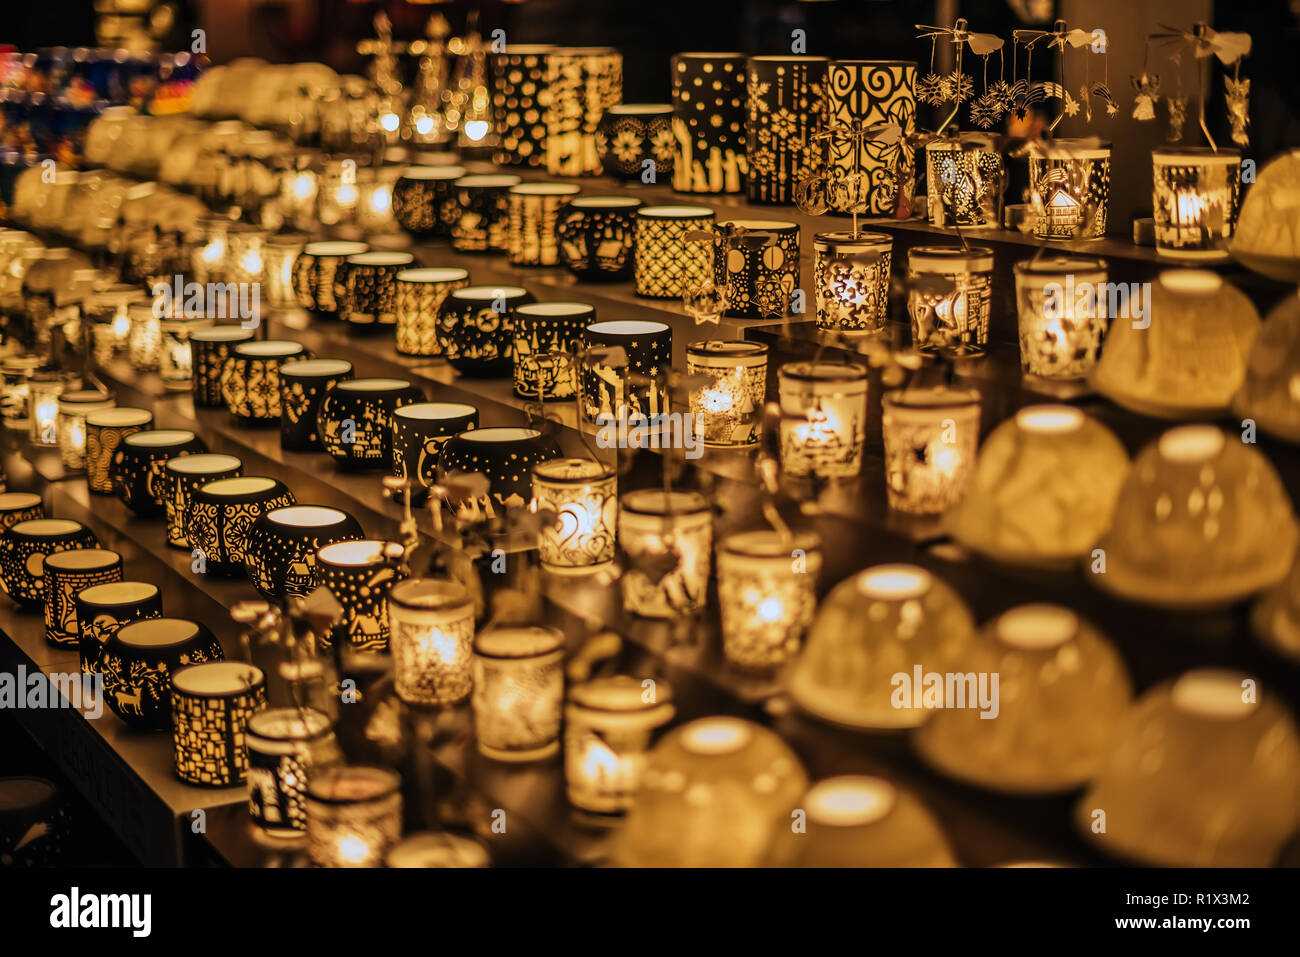 Christmas Glass Candle Holders Kiosk - Stock Image